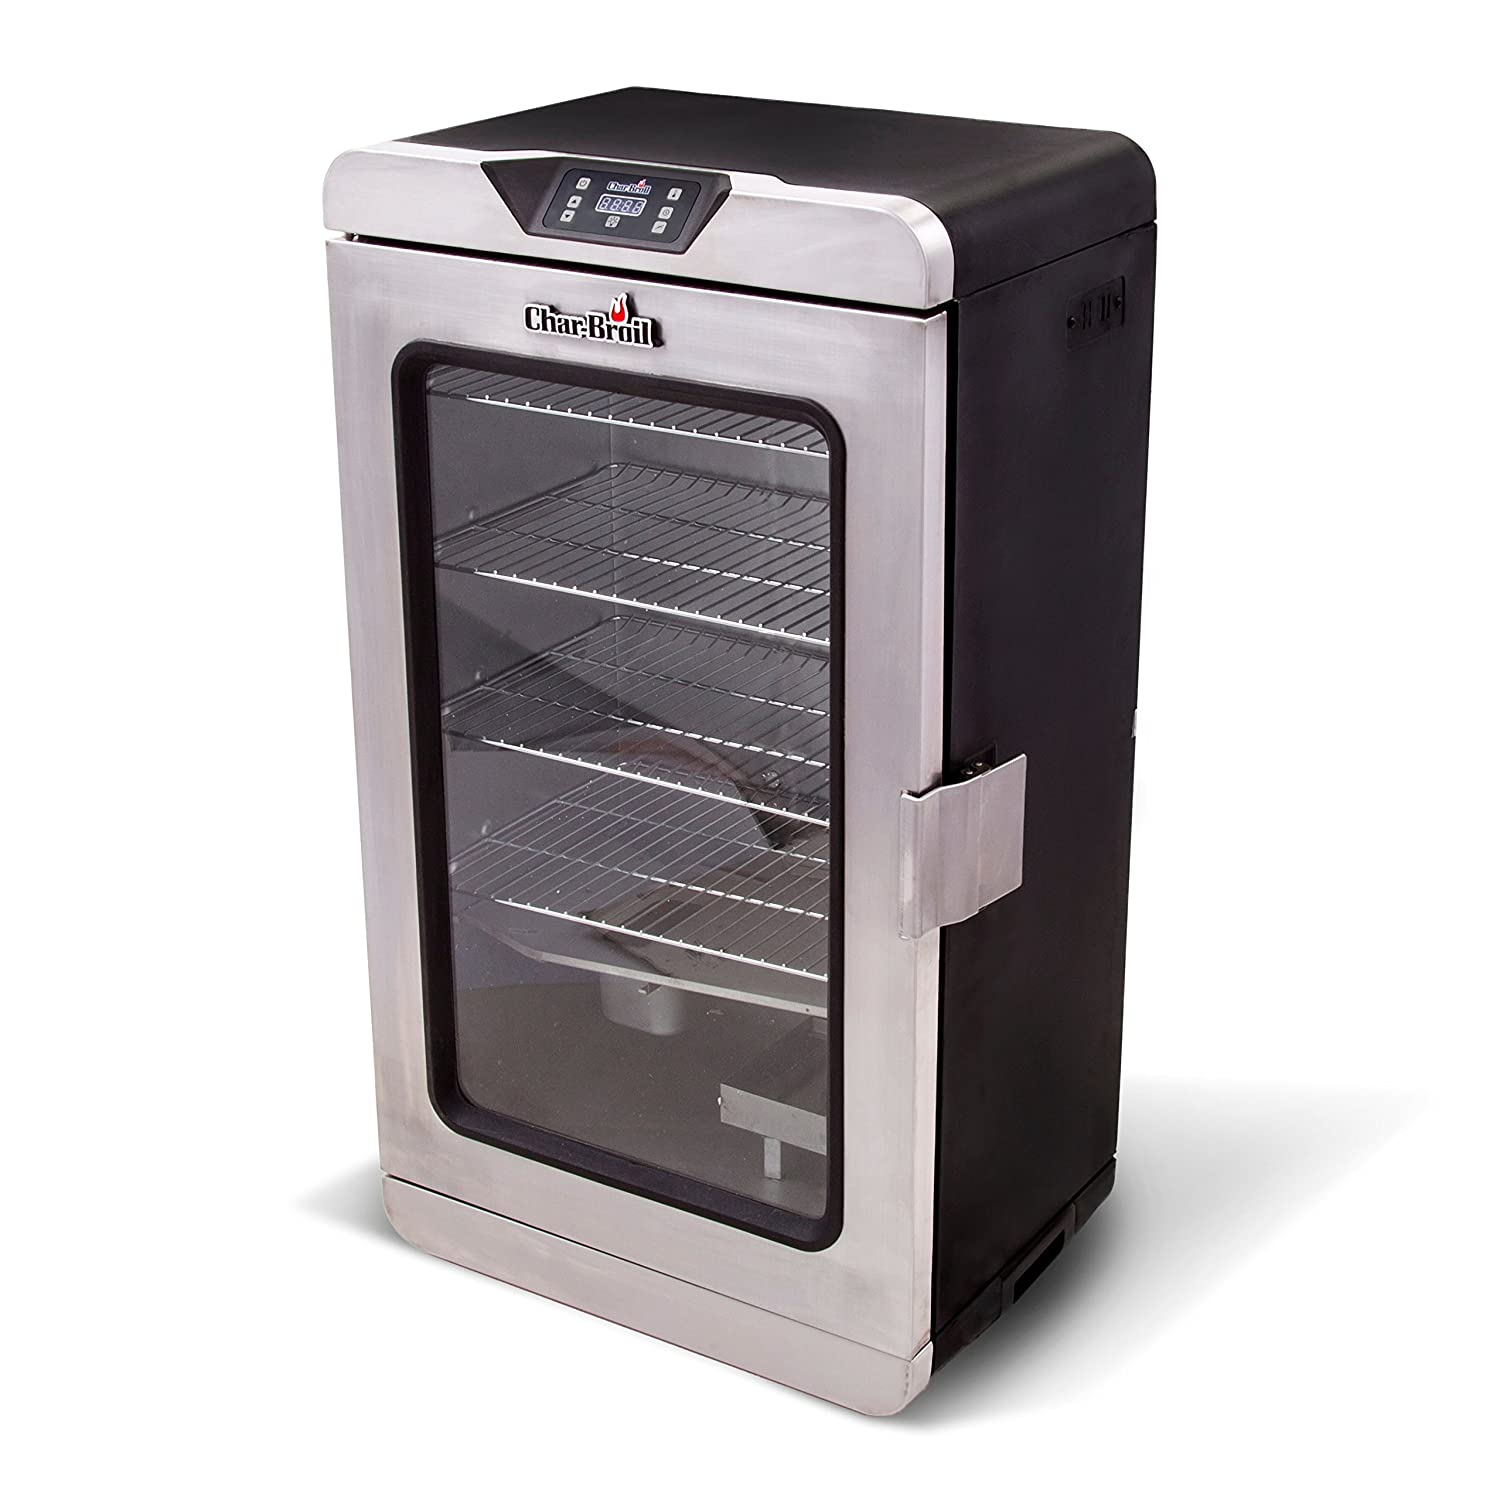 Char-Broil Deluxe Digital Electric Smoker, 1000 Square Inch